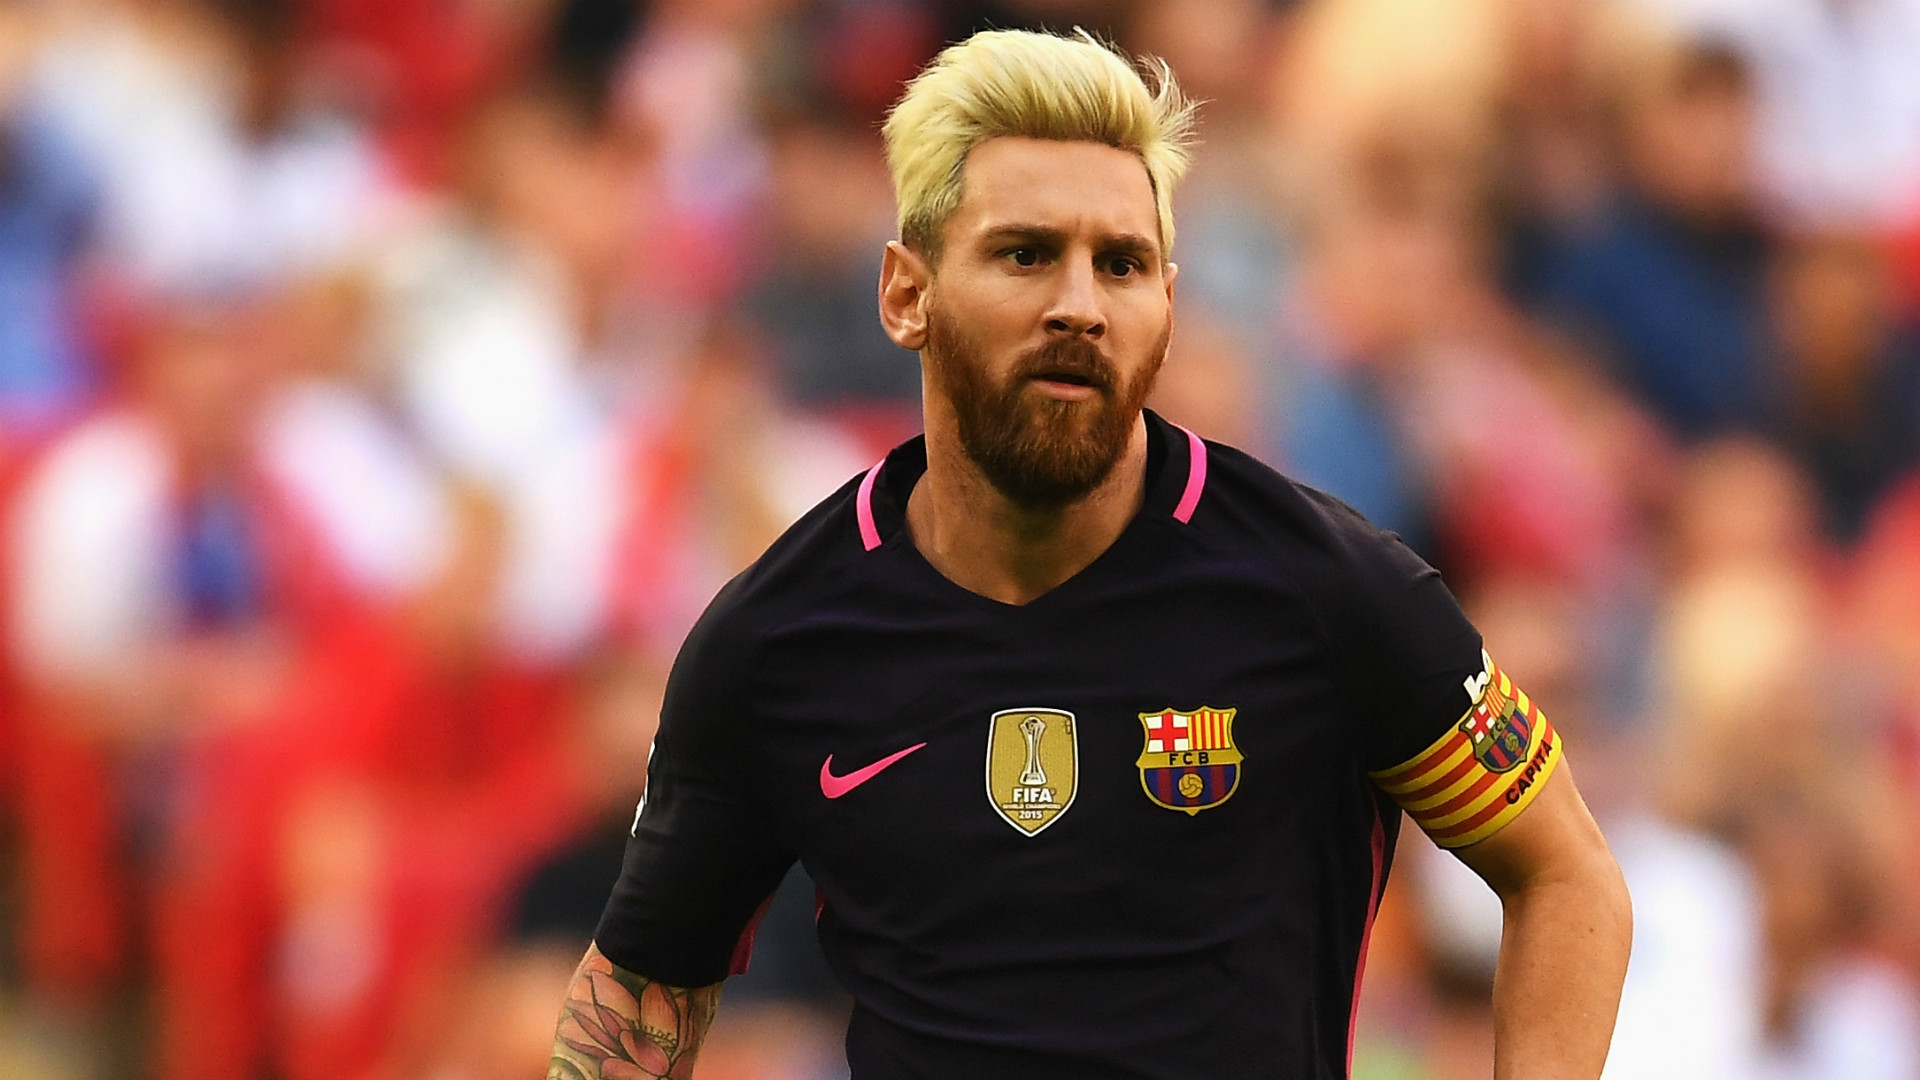 Lionel Messi 2018 Wallpapers 80 Images